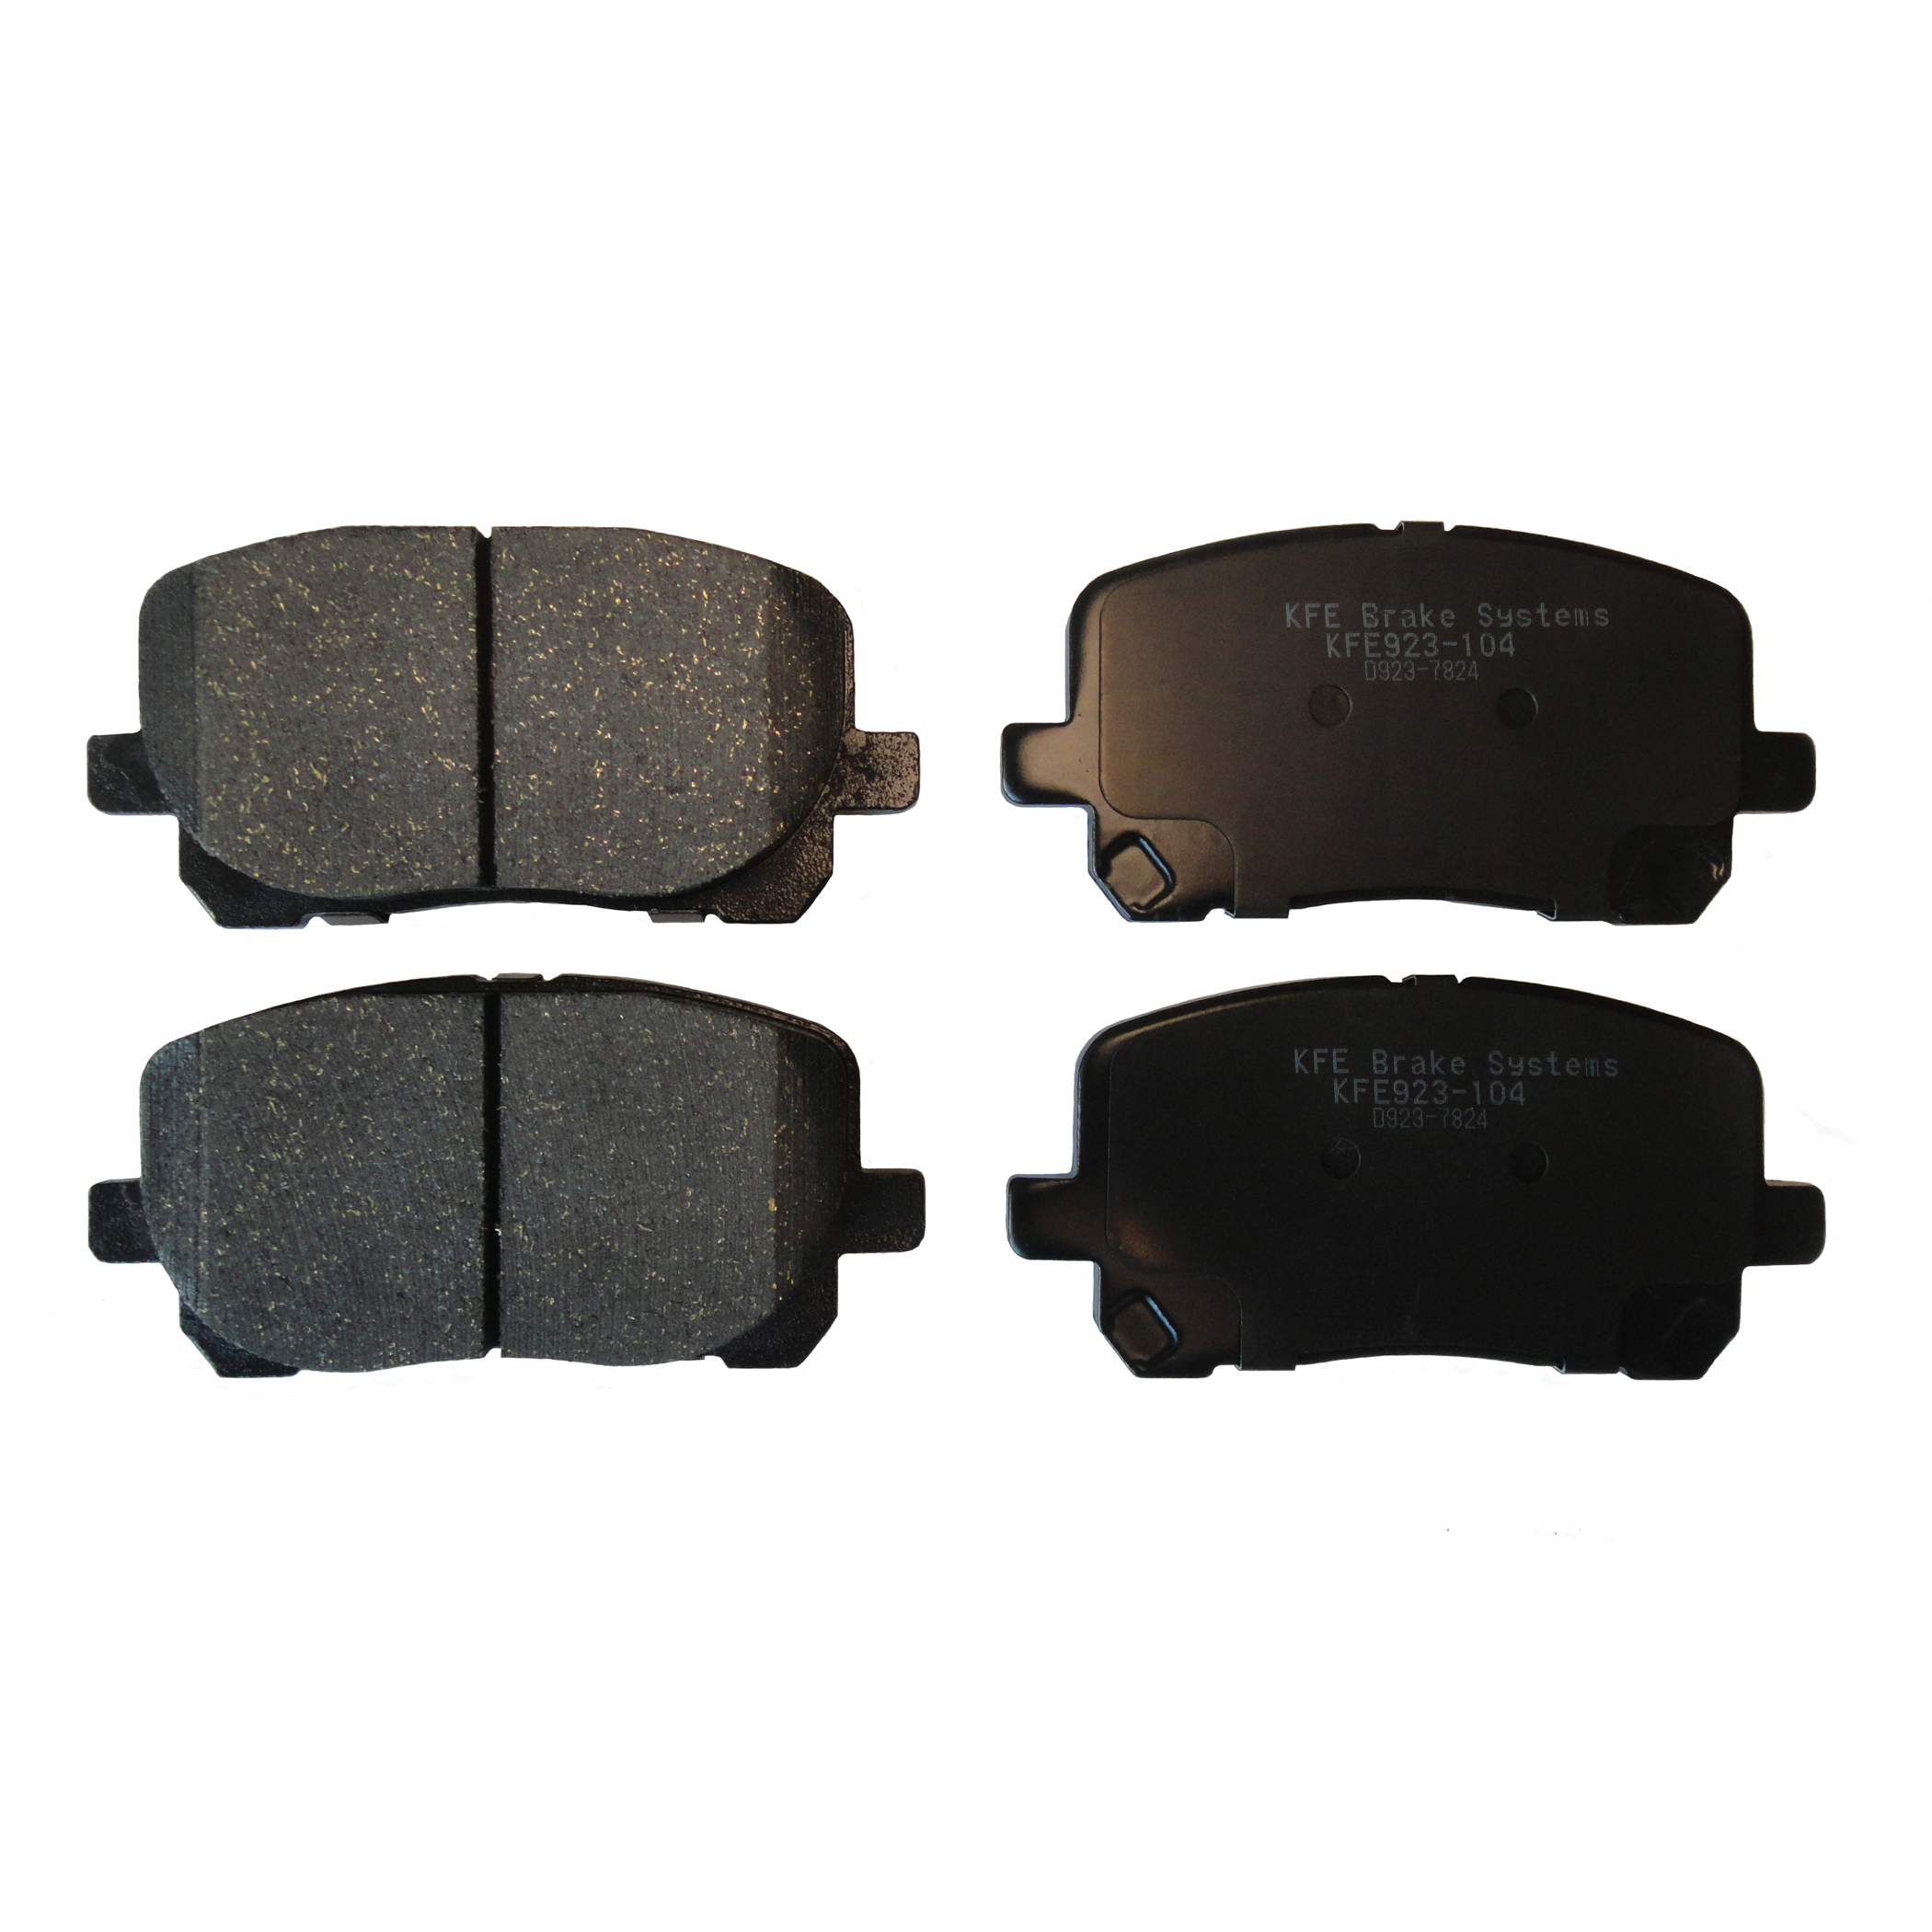 KFE923-104 Ultra Quiet Advanced Brake Pad